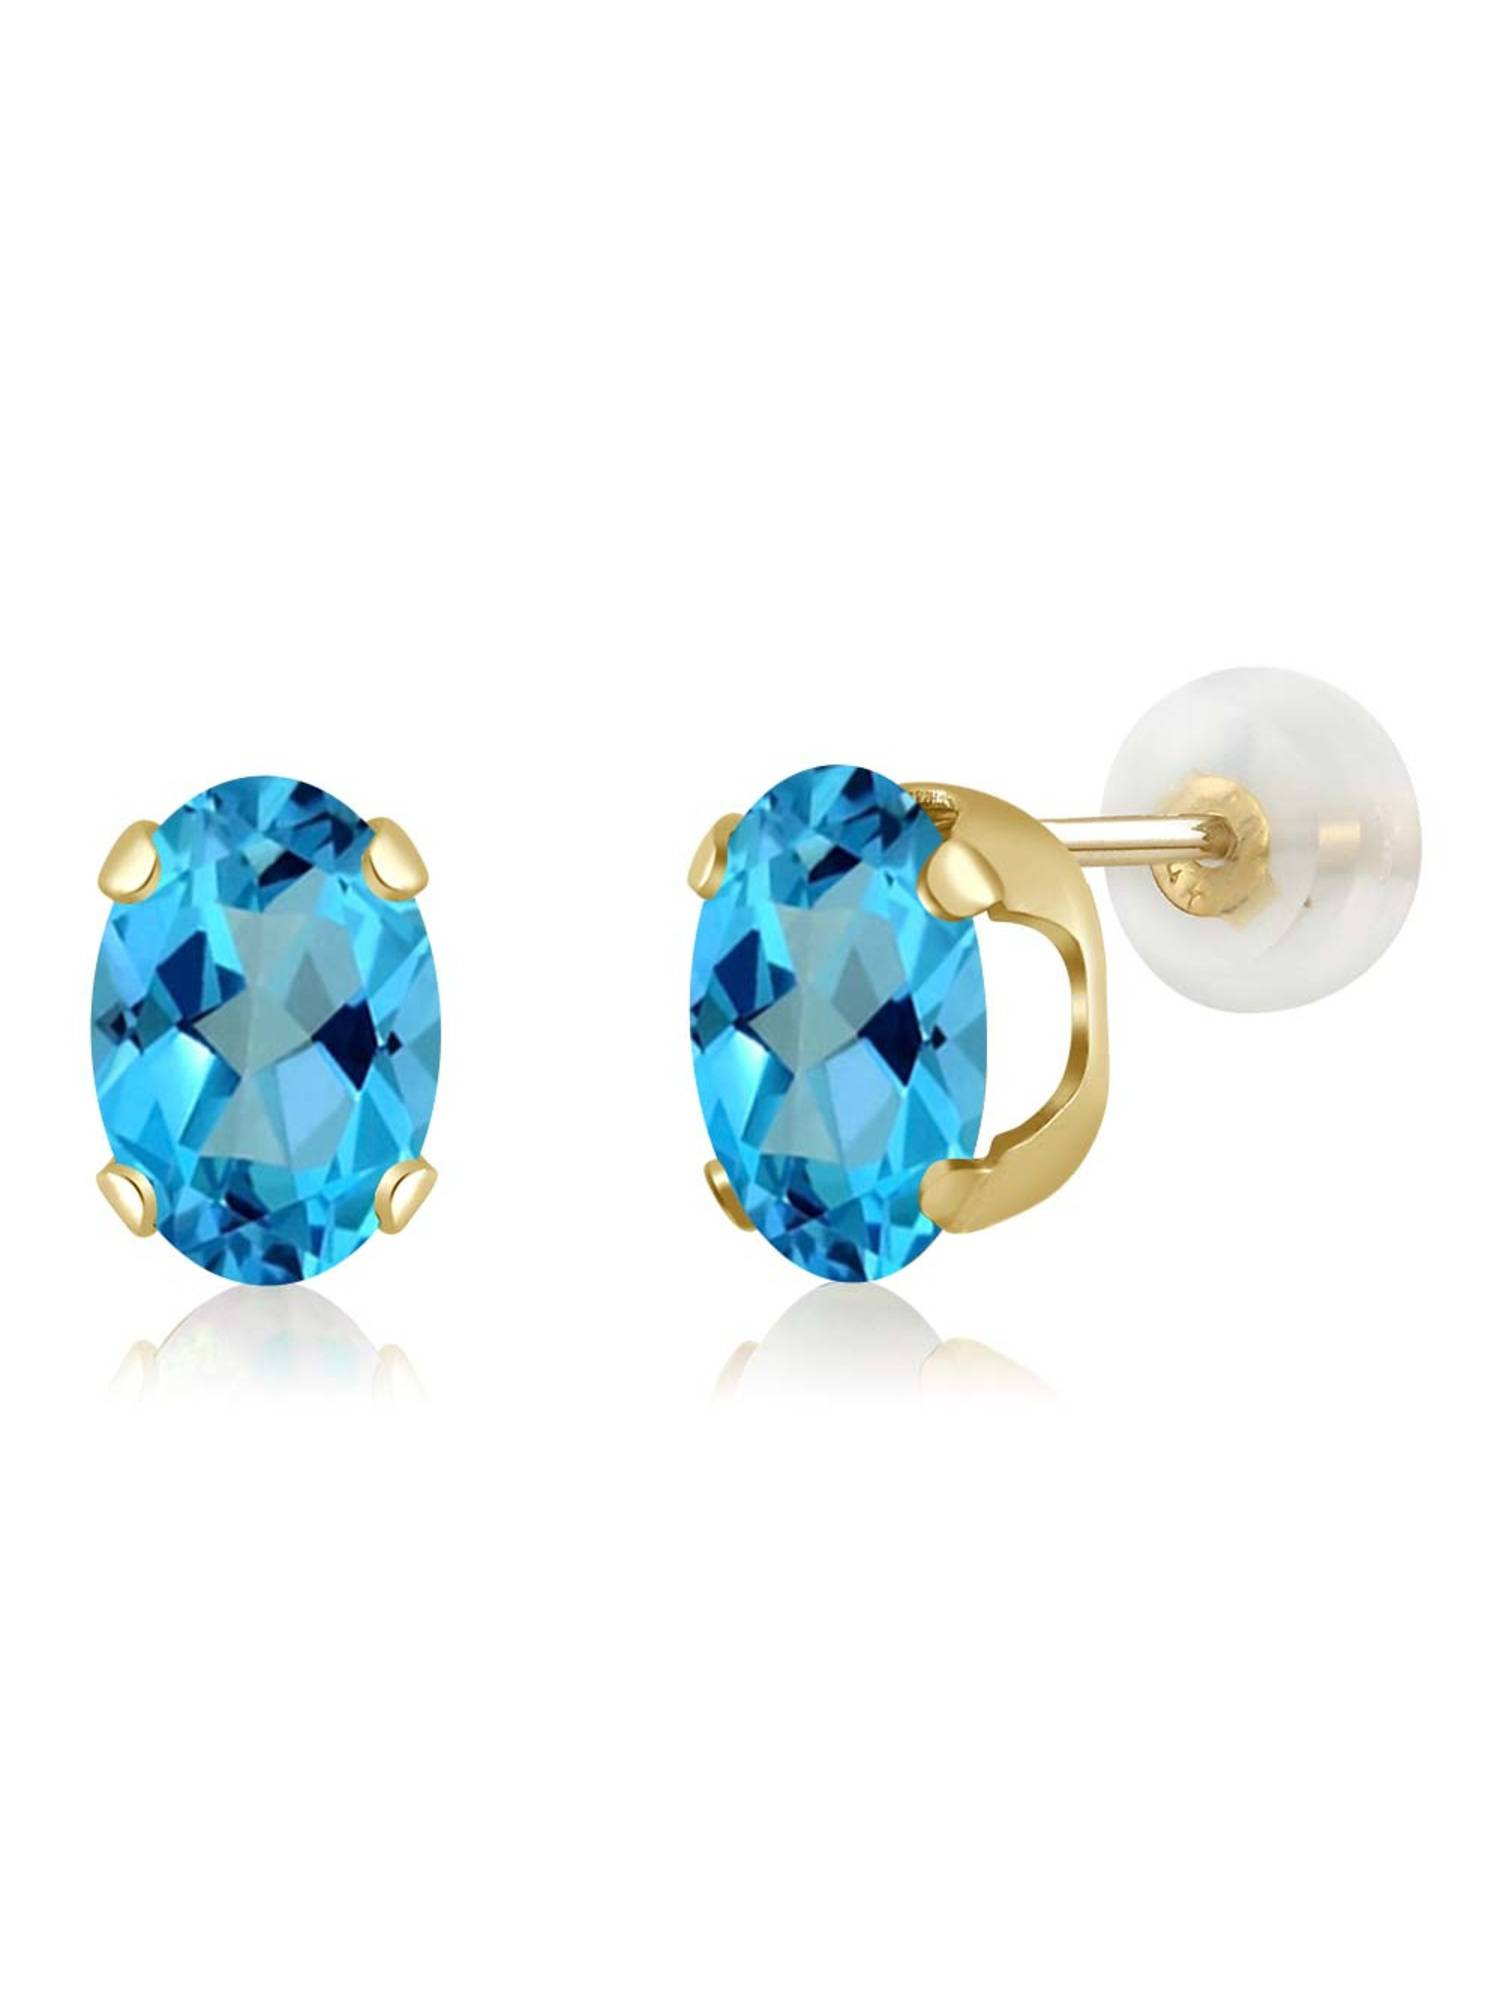 2.00 Ct Oval 7x5mm American Blue Mystic Topaz 14K Yellow Gold Stud Earrings